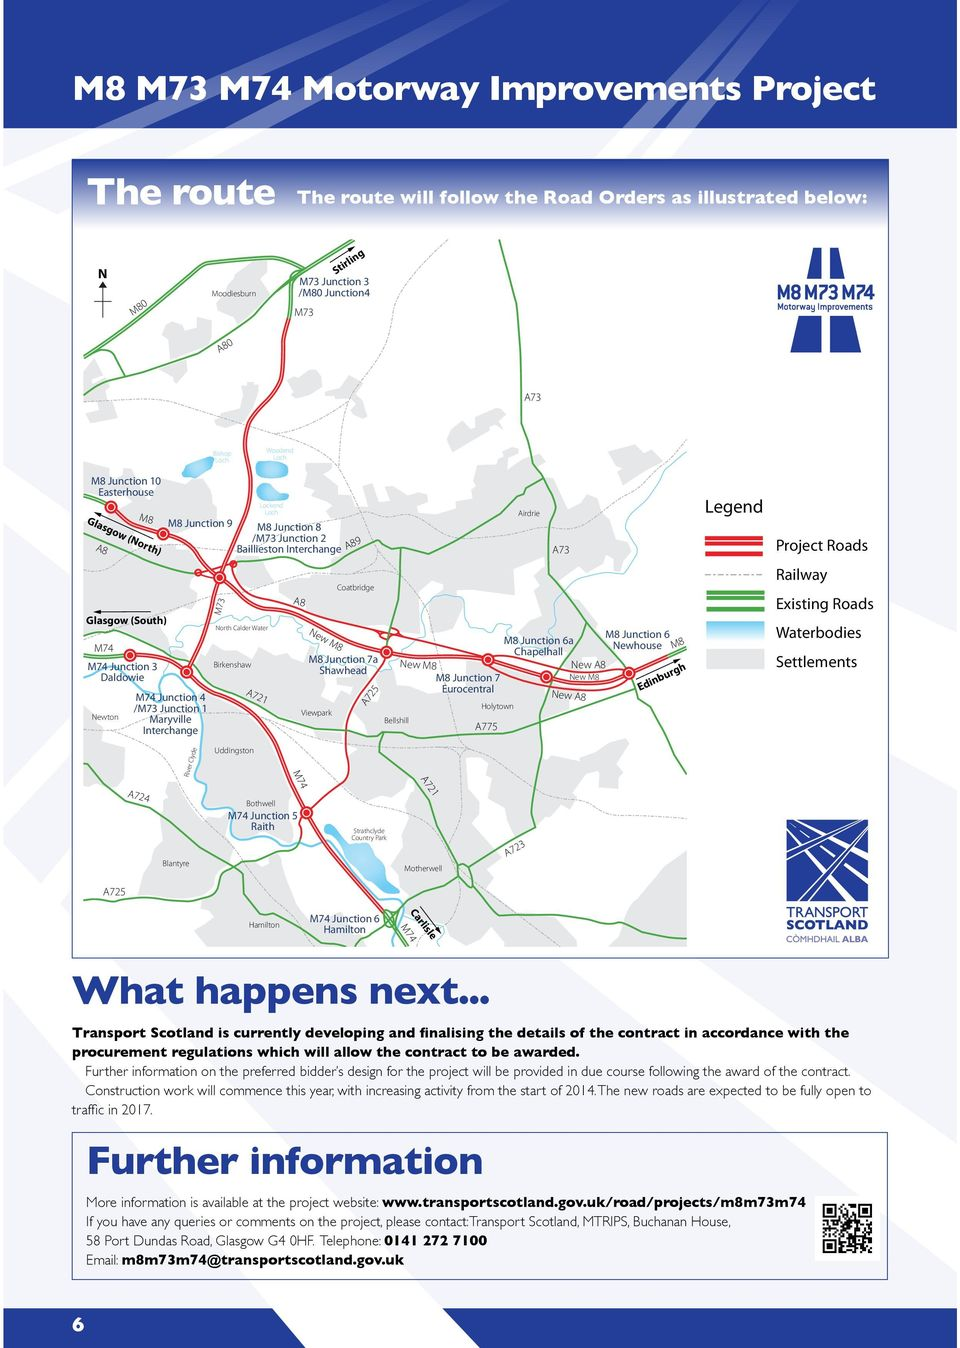 /M73 Junction 2 Baillieston Interchange A8 New M8 A89 Coatbridge M8 Junction 7a Shawhead Viewpark A725 Bellshill A775 Airdrie A73 New M8New M8 M8 Junction 7 Eurocentral Holytown M8 Junction 6a